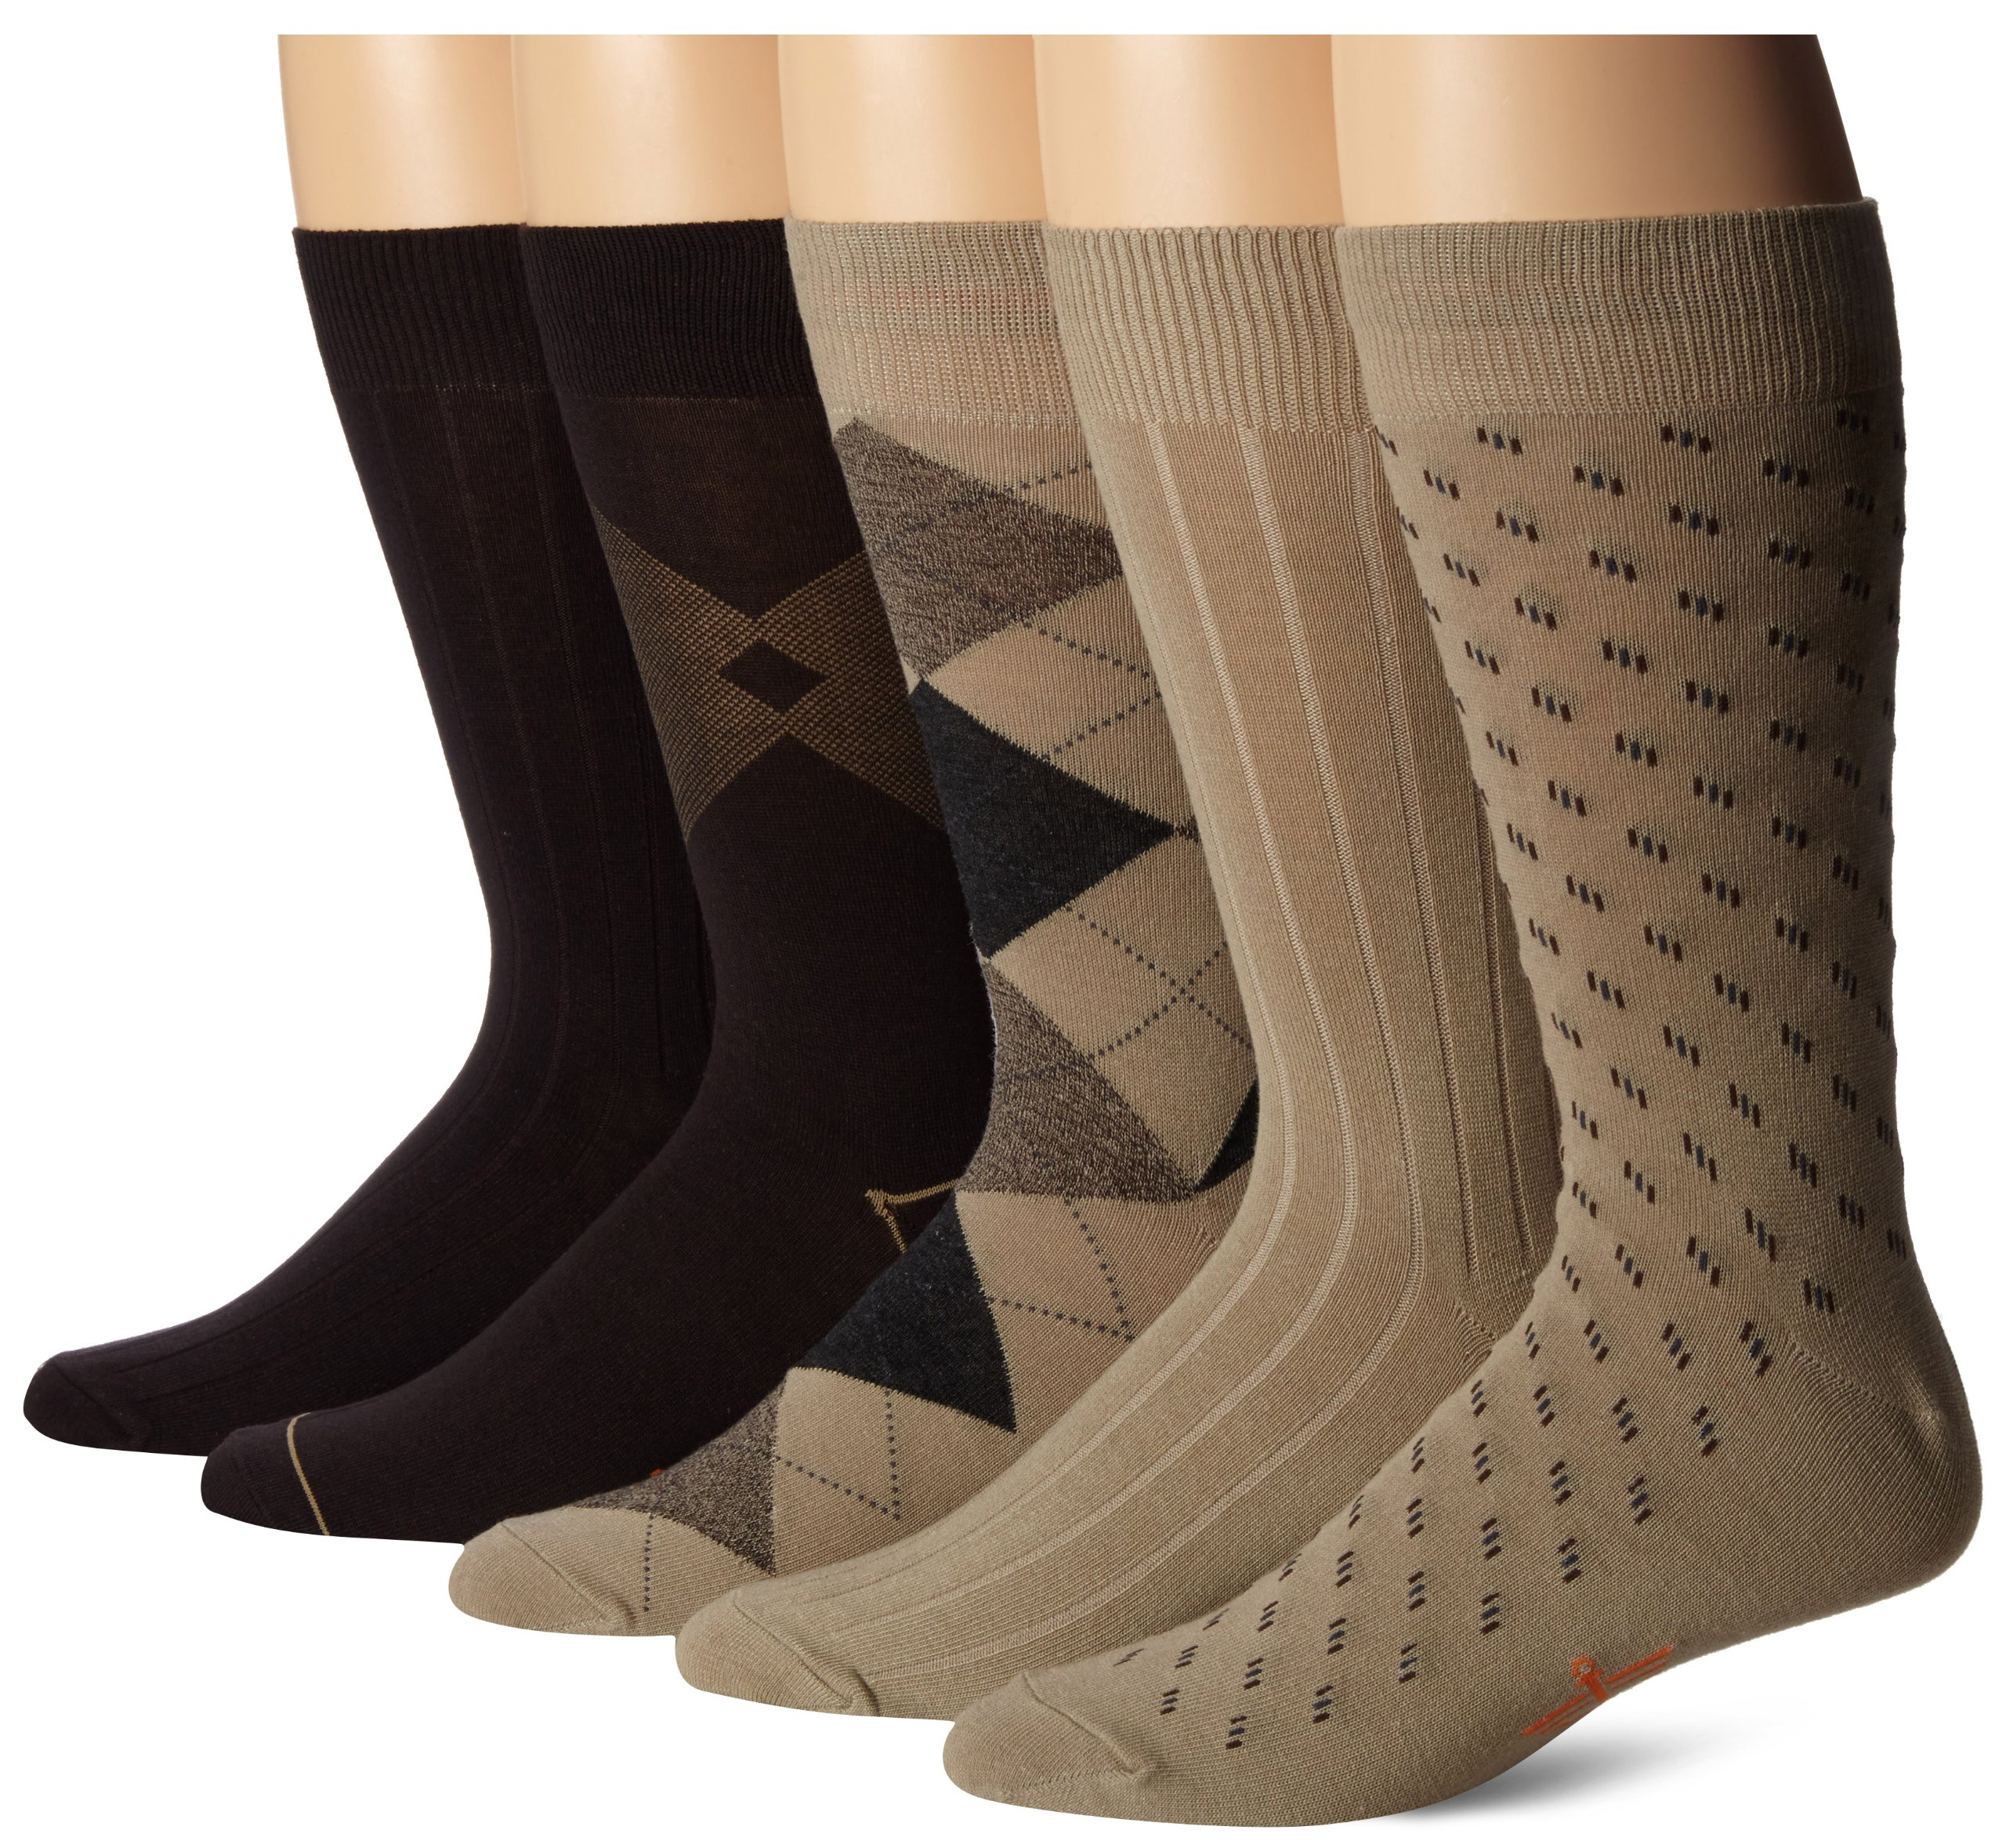 Dockers Men's 5 Pack Classics Dress Argyle Crew Socks, Khaki Assorted, Sock Size:10-13/Shoe Size: 6-12 by Dockers